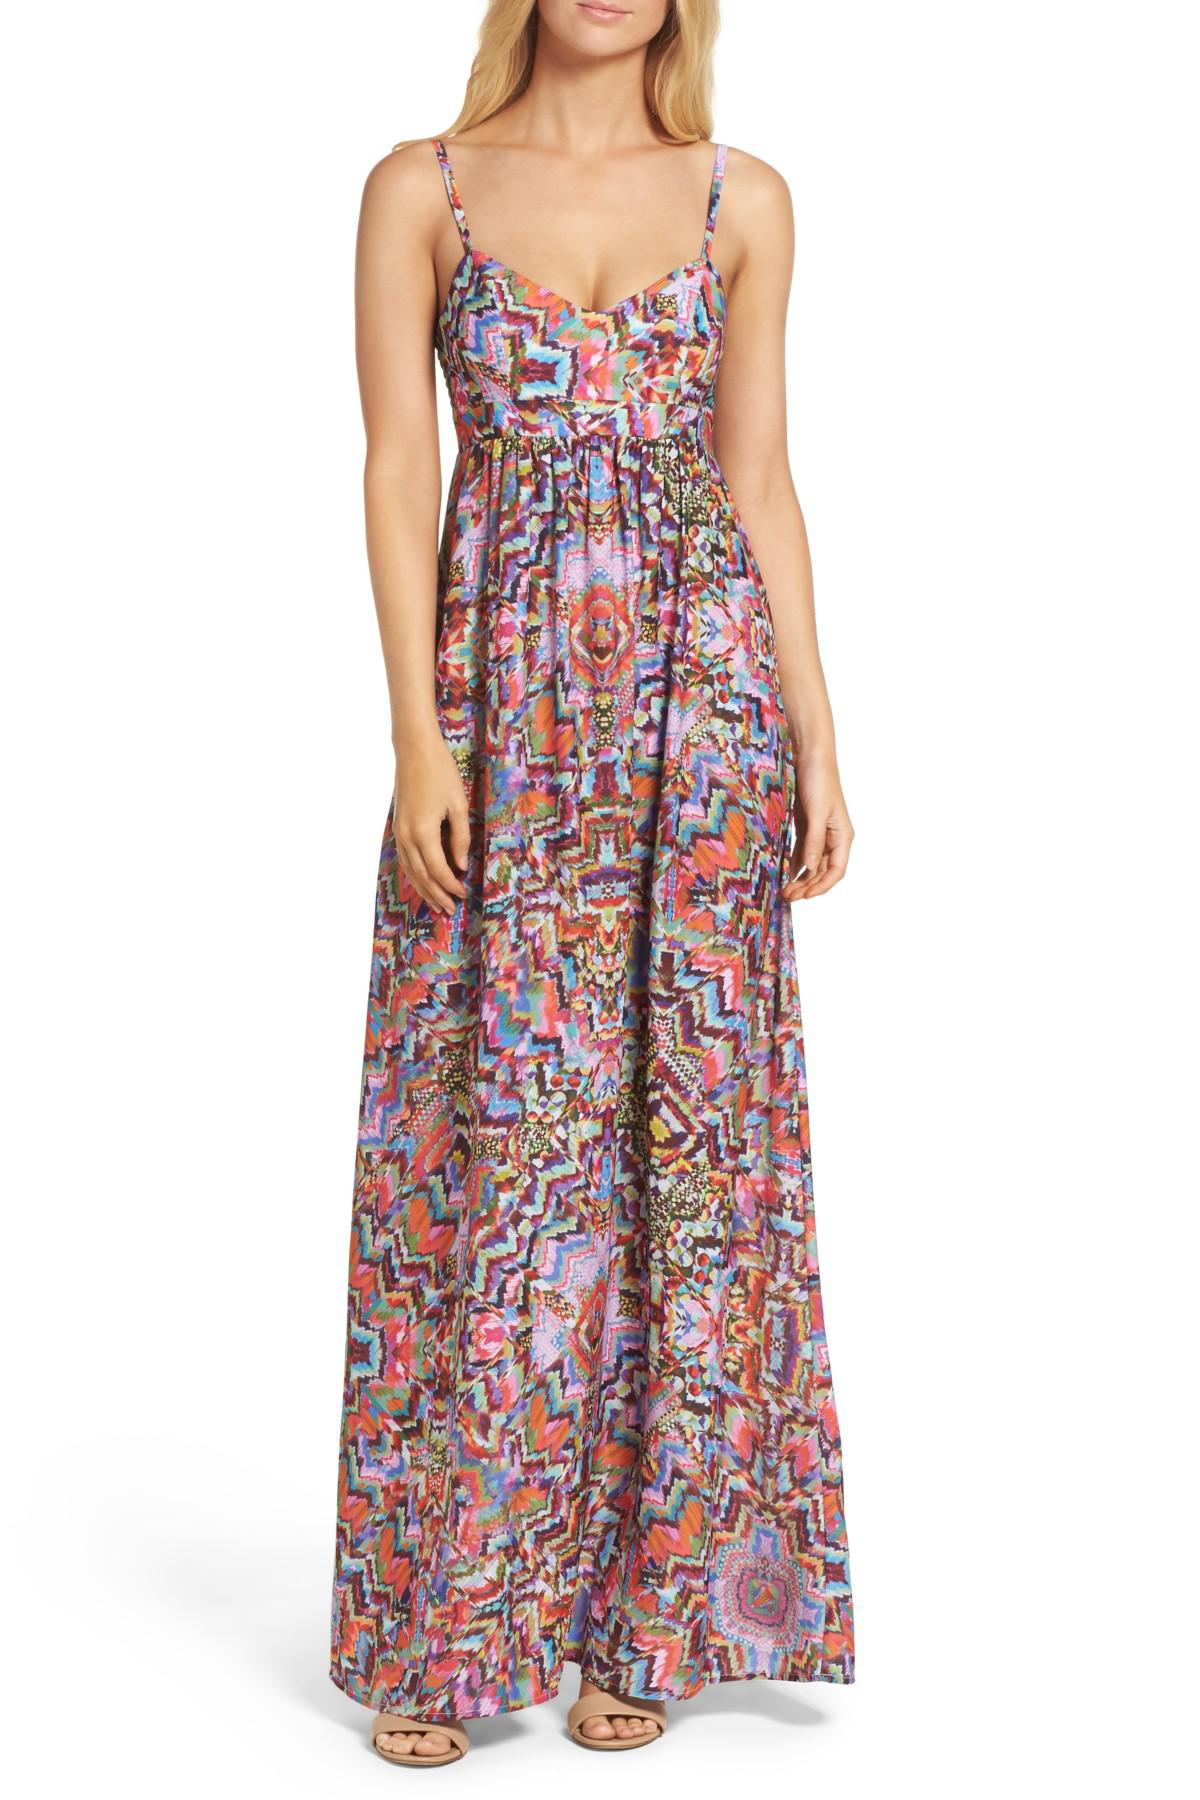 da435555521 Felicity and Coco Colby Woven Maxi Dress (regular   Petite ...